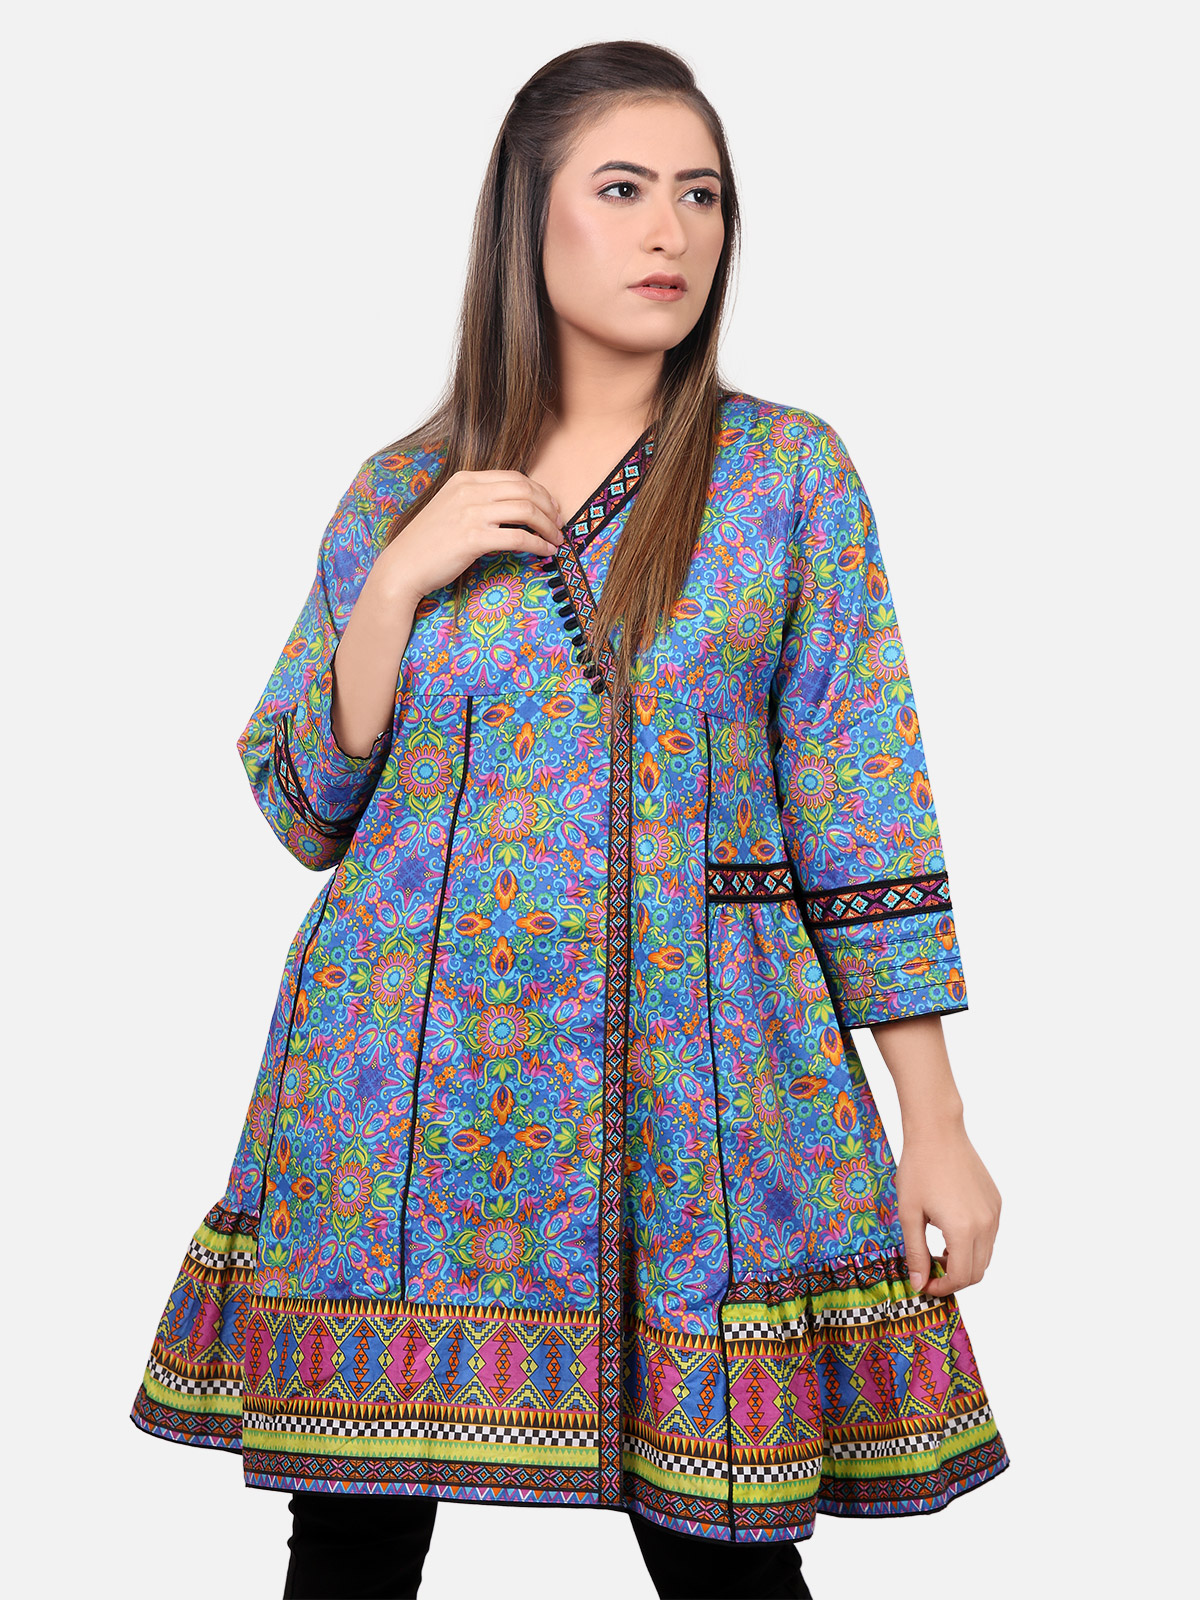 Stylish Funky Women Summer Casual Tops Kurtis 2018-2019 Trends